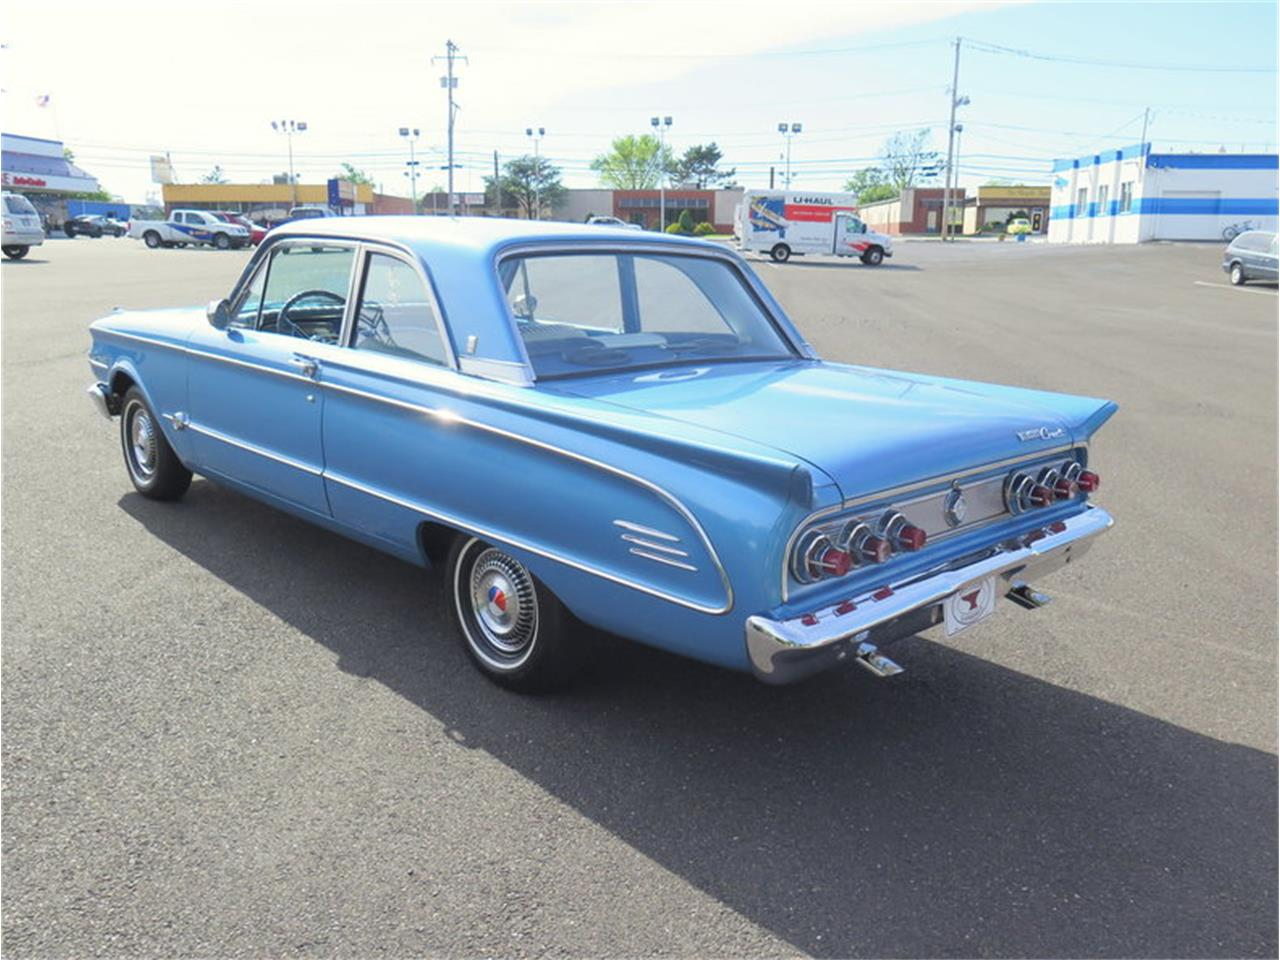 Large Picture of Classic '63 Comet located in Pennsylvania - $17,900.00 Offered by Old Forge Motorcars - NMVR